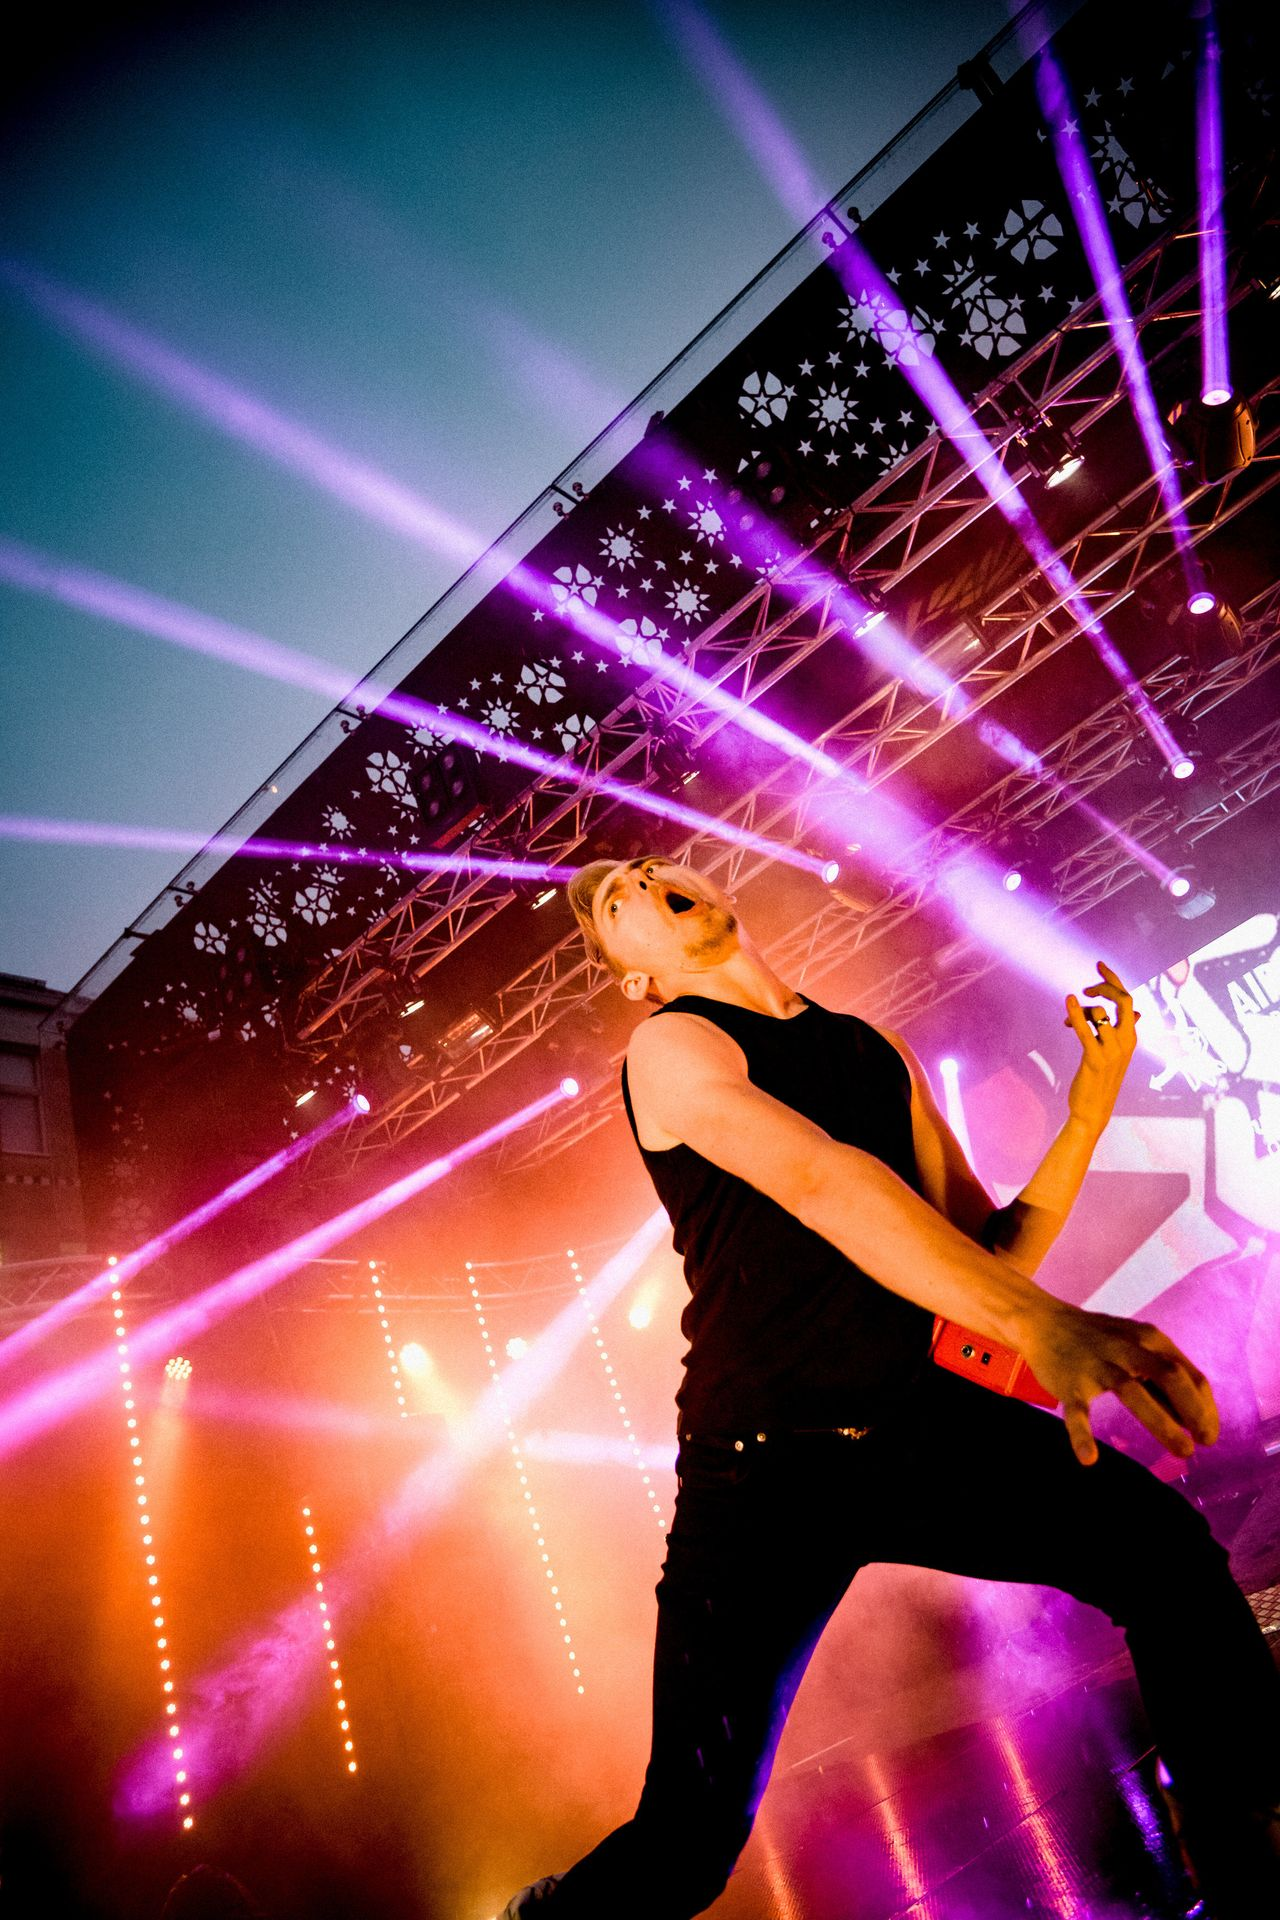 """<p><span style=""""color: #000000; font-family: Verdana, Arial, Helvetica, sans-serif; font-size: 11px; background-color: #ffffff;"""">Eero """"Oulu's Own Son"""" Ojala performs during the 2015 Air Guitar World Championships. </span></p>"""